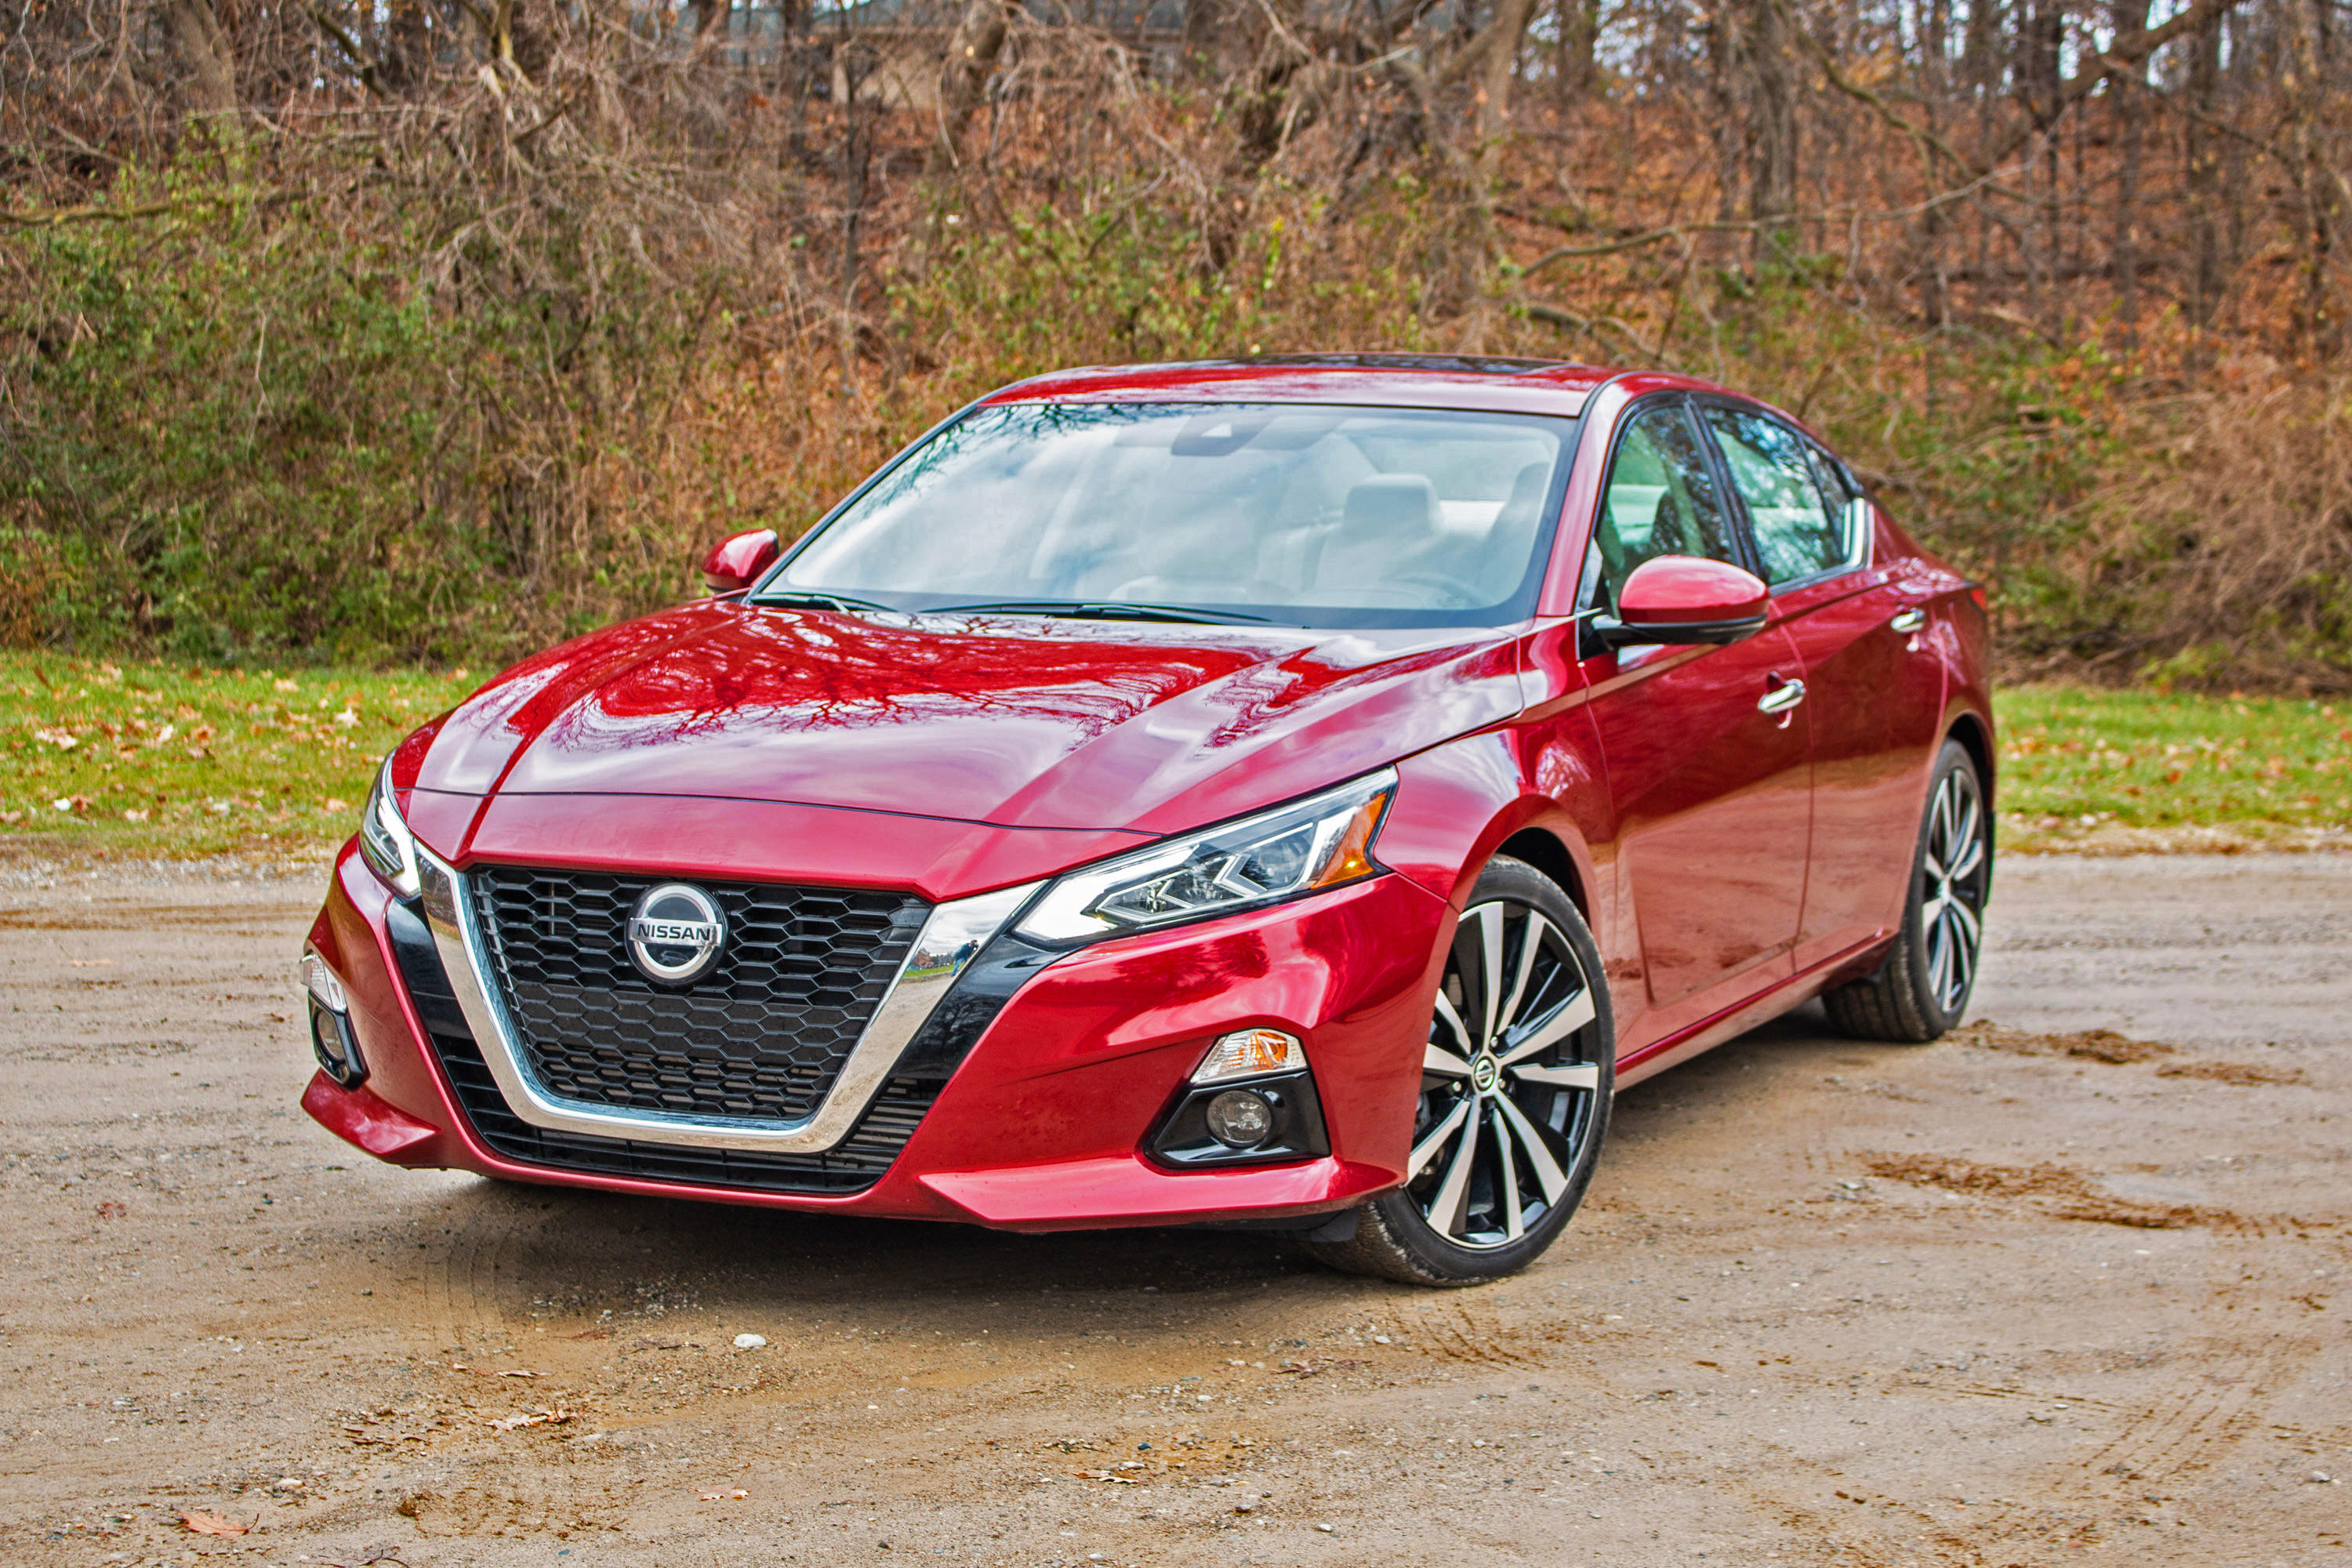 2020 Nissan Altima Model Overview Pricing Tech And Specs Roadshow